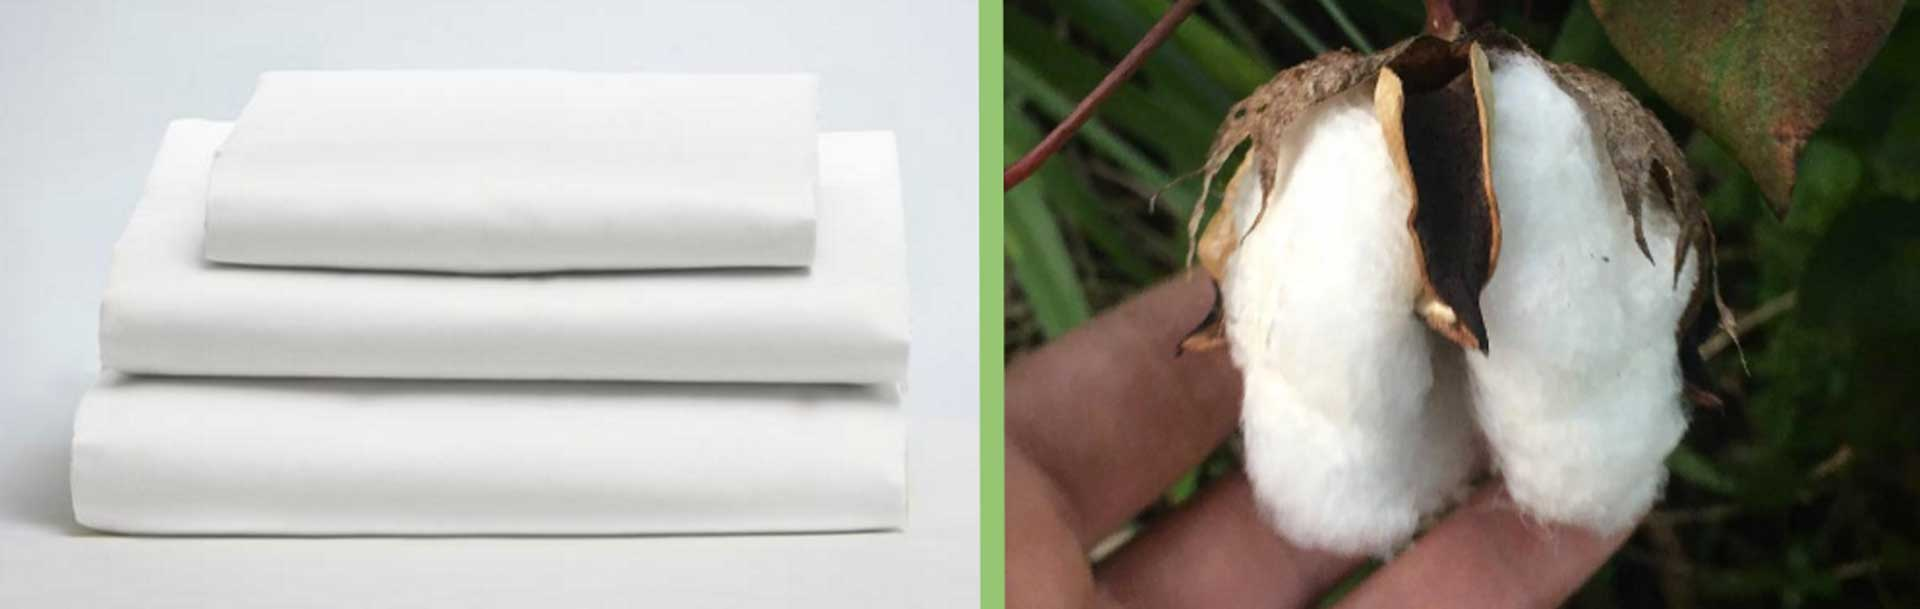 Holy sheet! 3 criteria for finding the perfect set of organic bed sheets. thumbnail